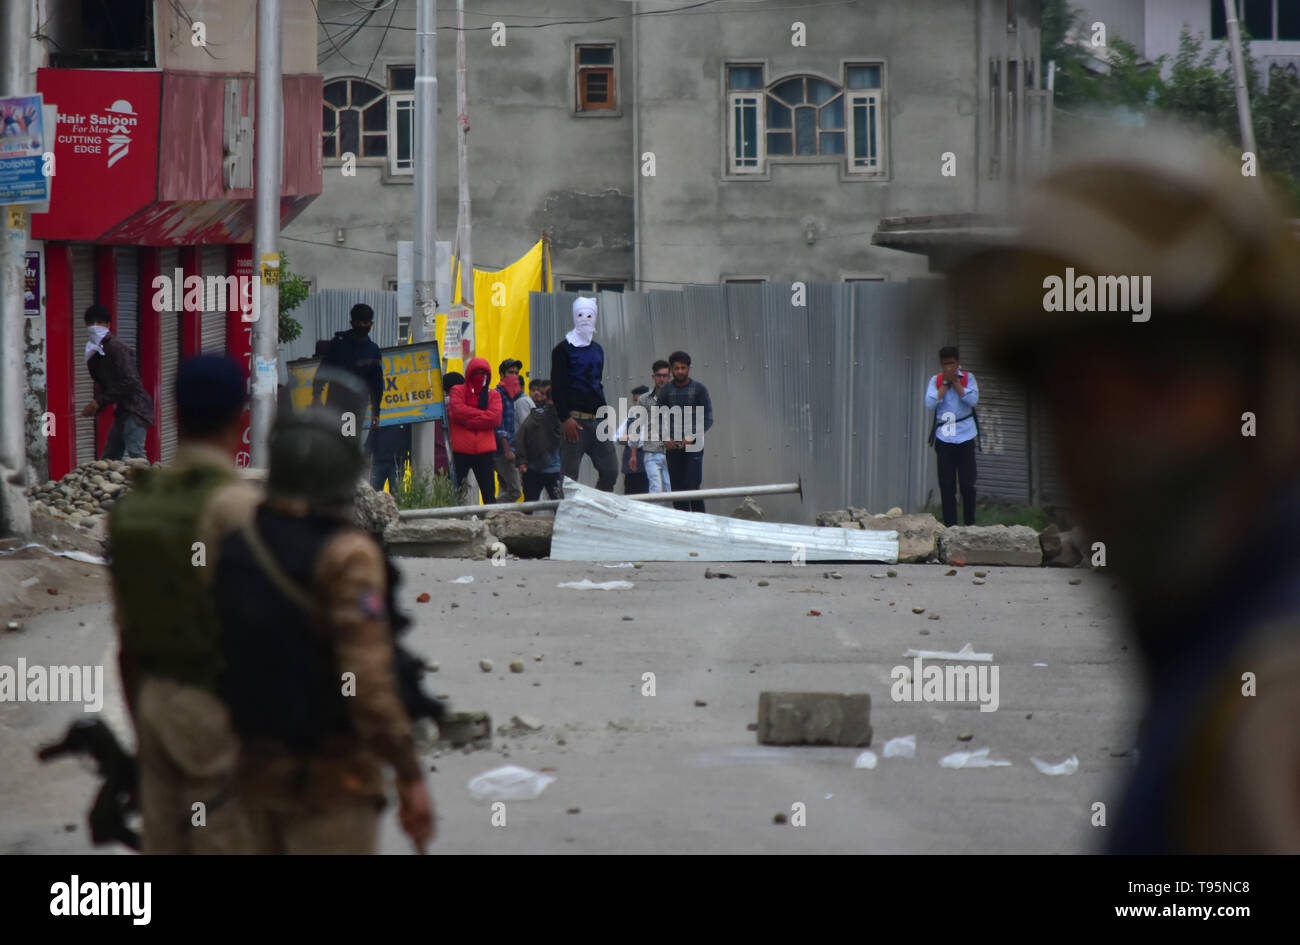 Pulwama, Kashmir. 16th May 2019. Protesters clash with Indian government forces after the funeral procession of rebel commander Naseer Pandith in the Karimabad area of the Pulwama district in Indian Administered Kashmir. 16th May, 2019. The militant commander was killed in a pre-dawn confrontation between Indian forces and rebels in the Dalipora area of Pulwama during which two other rebels, a soldier, and a civilian were also killed. After the funeral hundreds of mourners clashed with Indian forces in many sites in Pulwama Credit: Muzamil Mattoo/IMAGESLIVE/ZUMA Wire/Alamy Live News - Stock Image